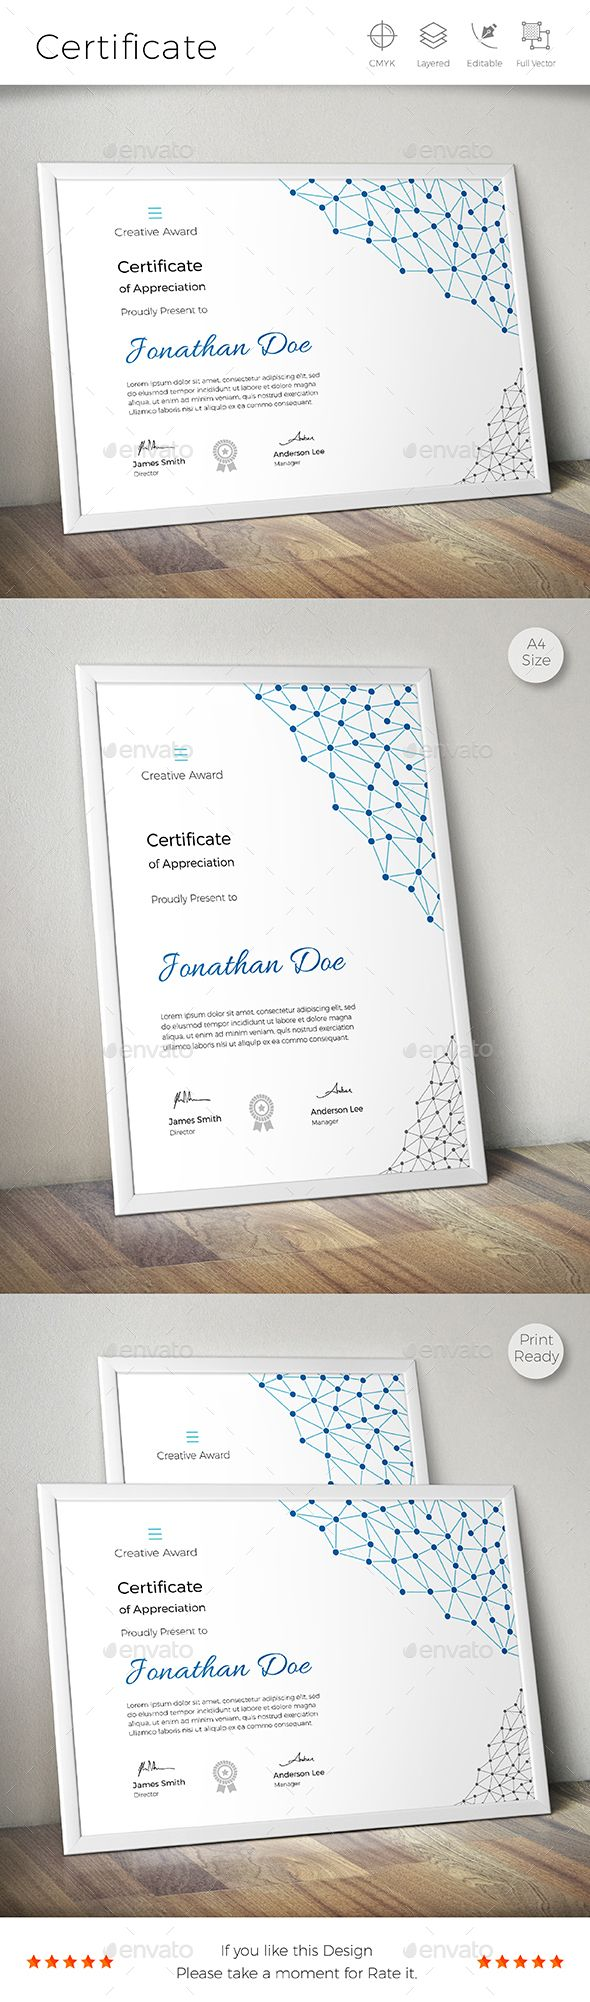 Creative certificate designs billing form template free printable creative certificate designs download lease gift voucher template word 804855455462f412ea31878eb6cfe193 creative certificate designshtml yelopaper Gallery